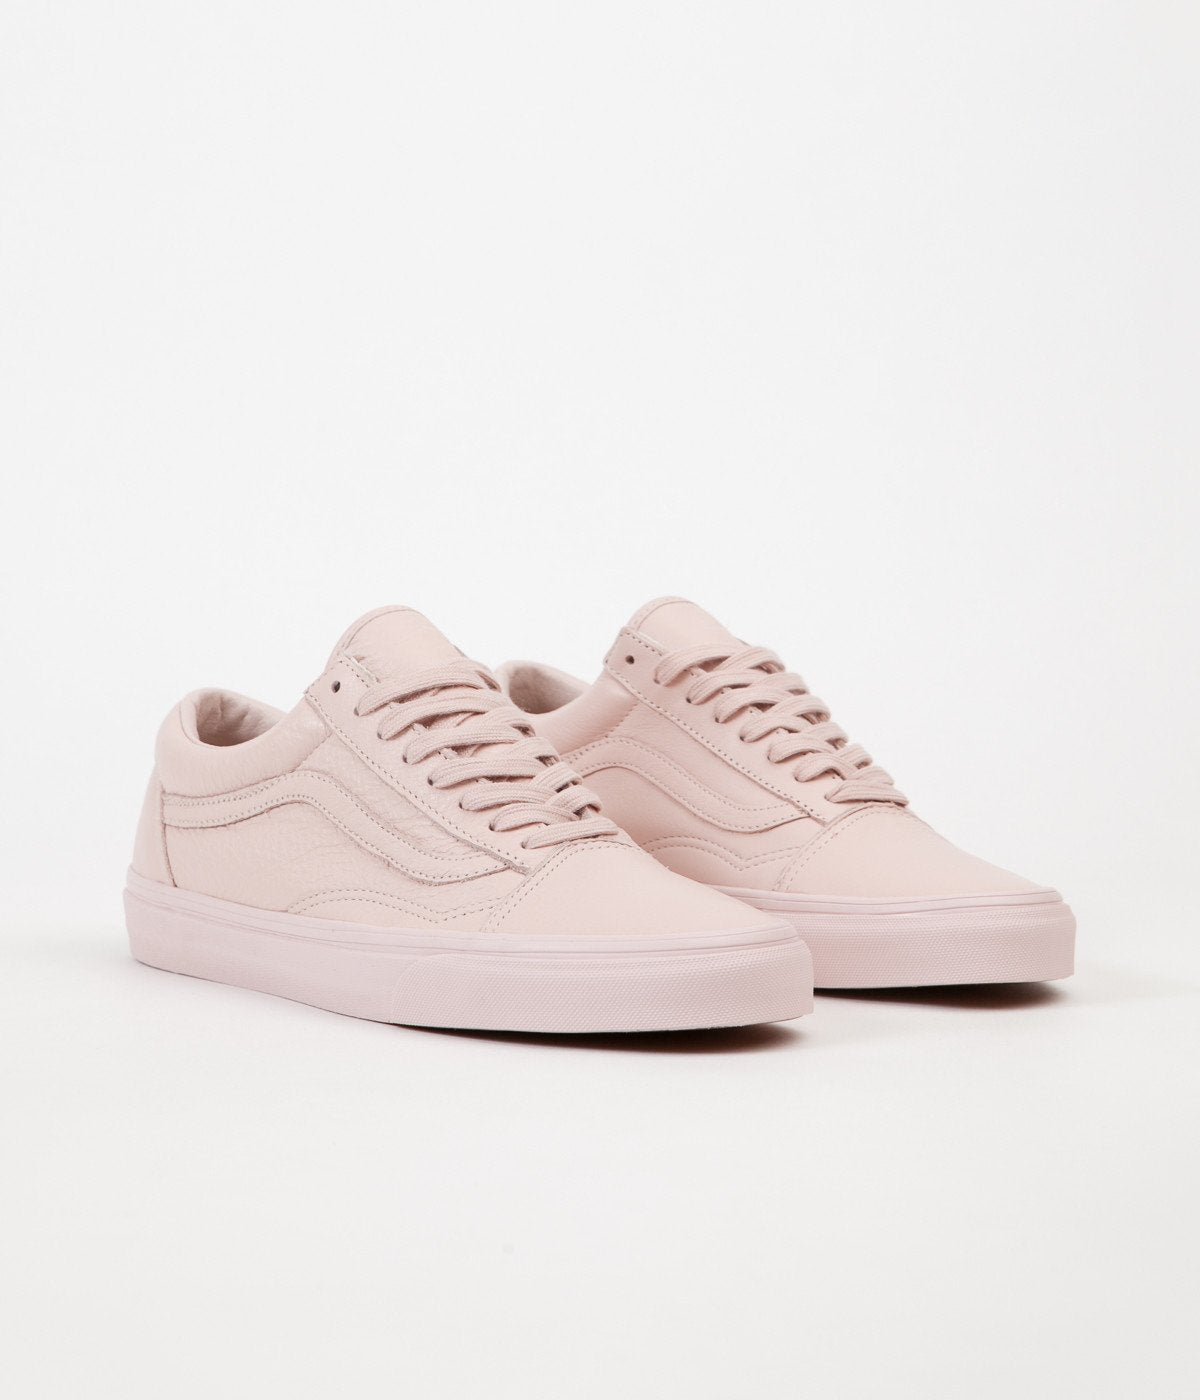 ... Vans Old Skool Leather Shoes - Mono   Sepia Rose ... c5cc3c23e